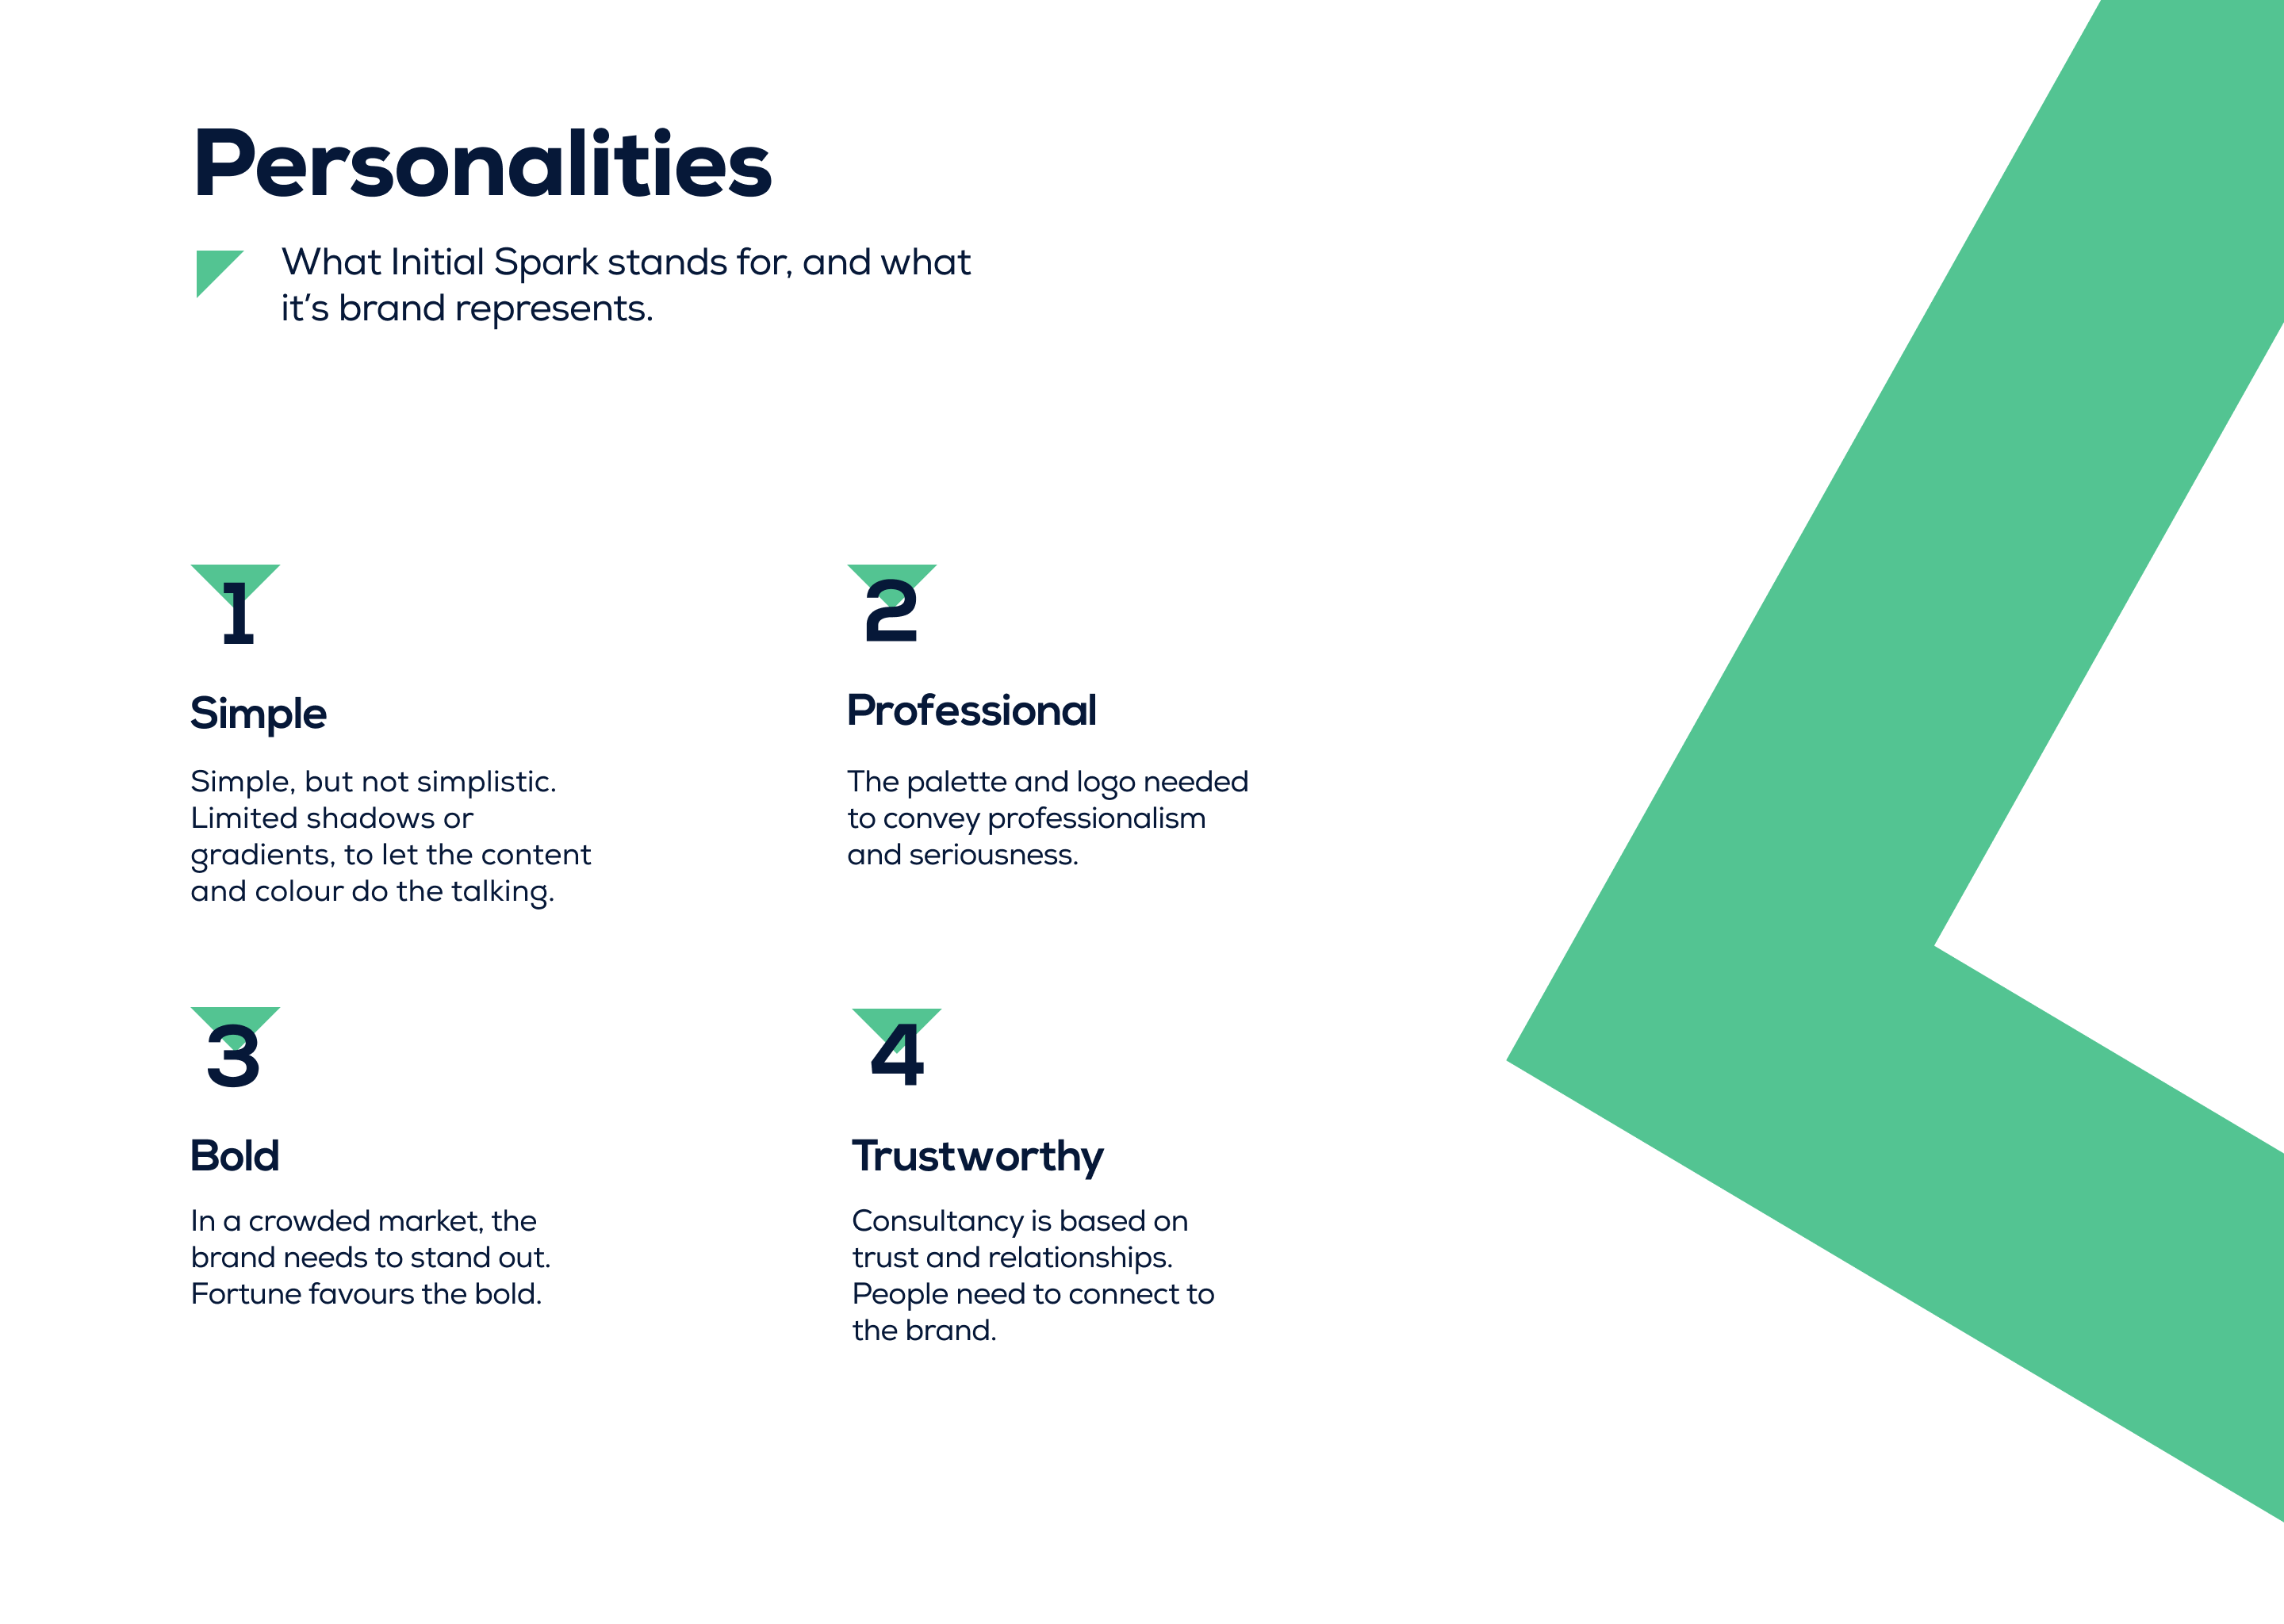 Initial Spark personalities. Simple, professional, bold and trustworthy